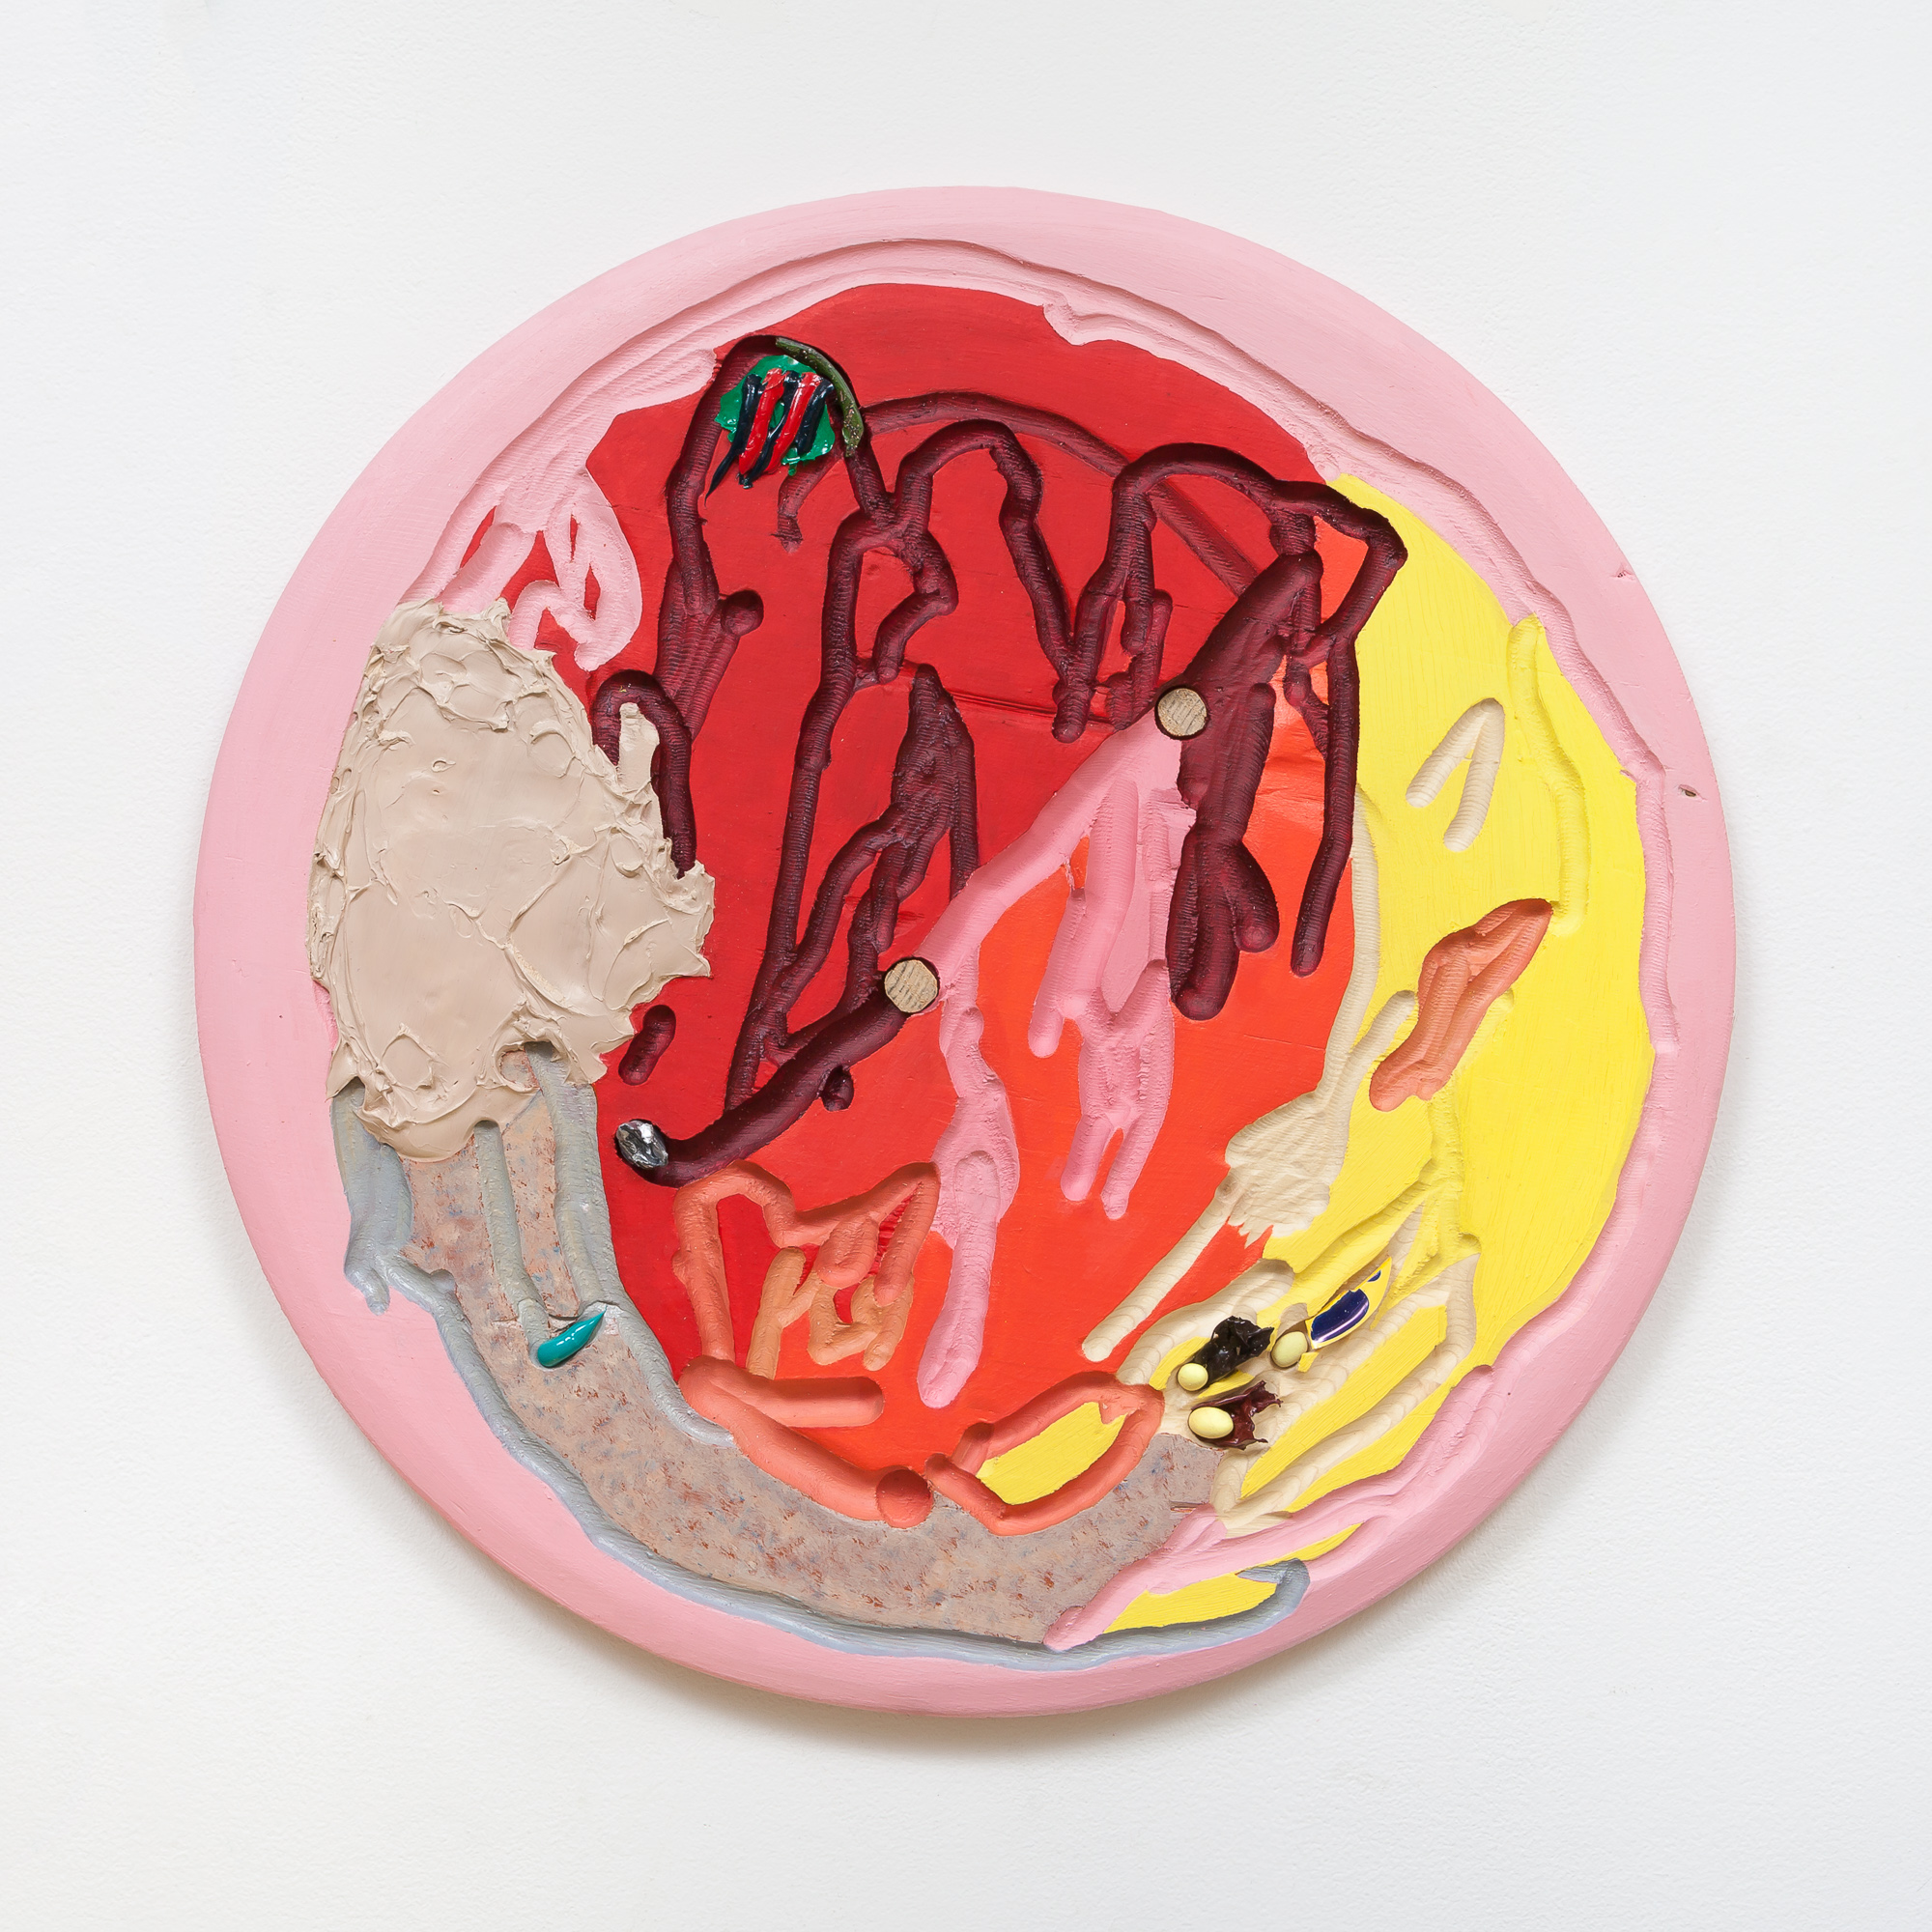 Roni Packer, Pleasing (Bright Pink), 201